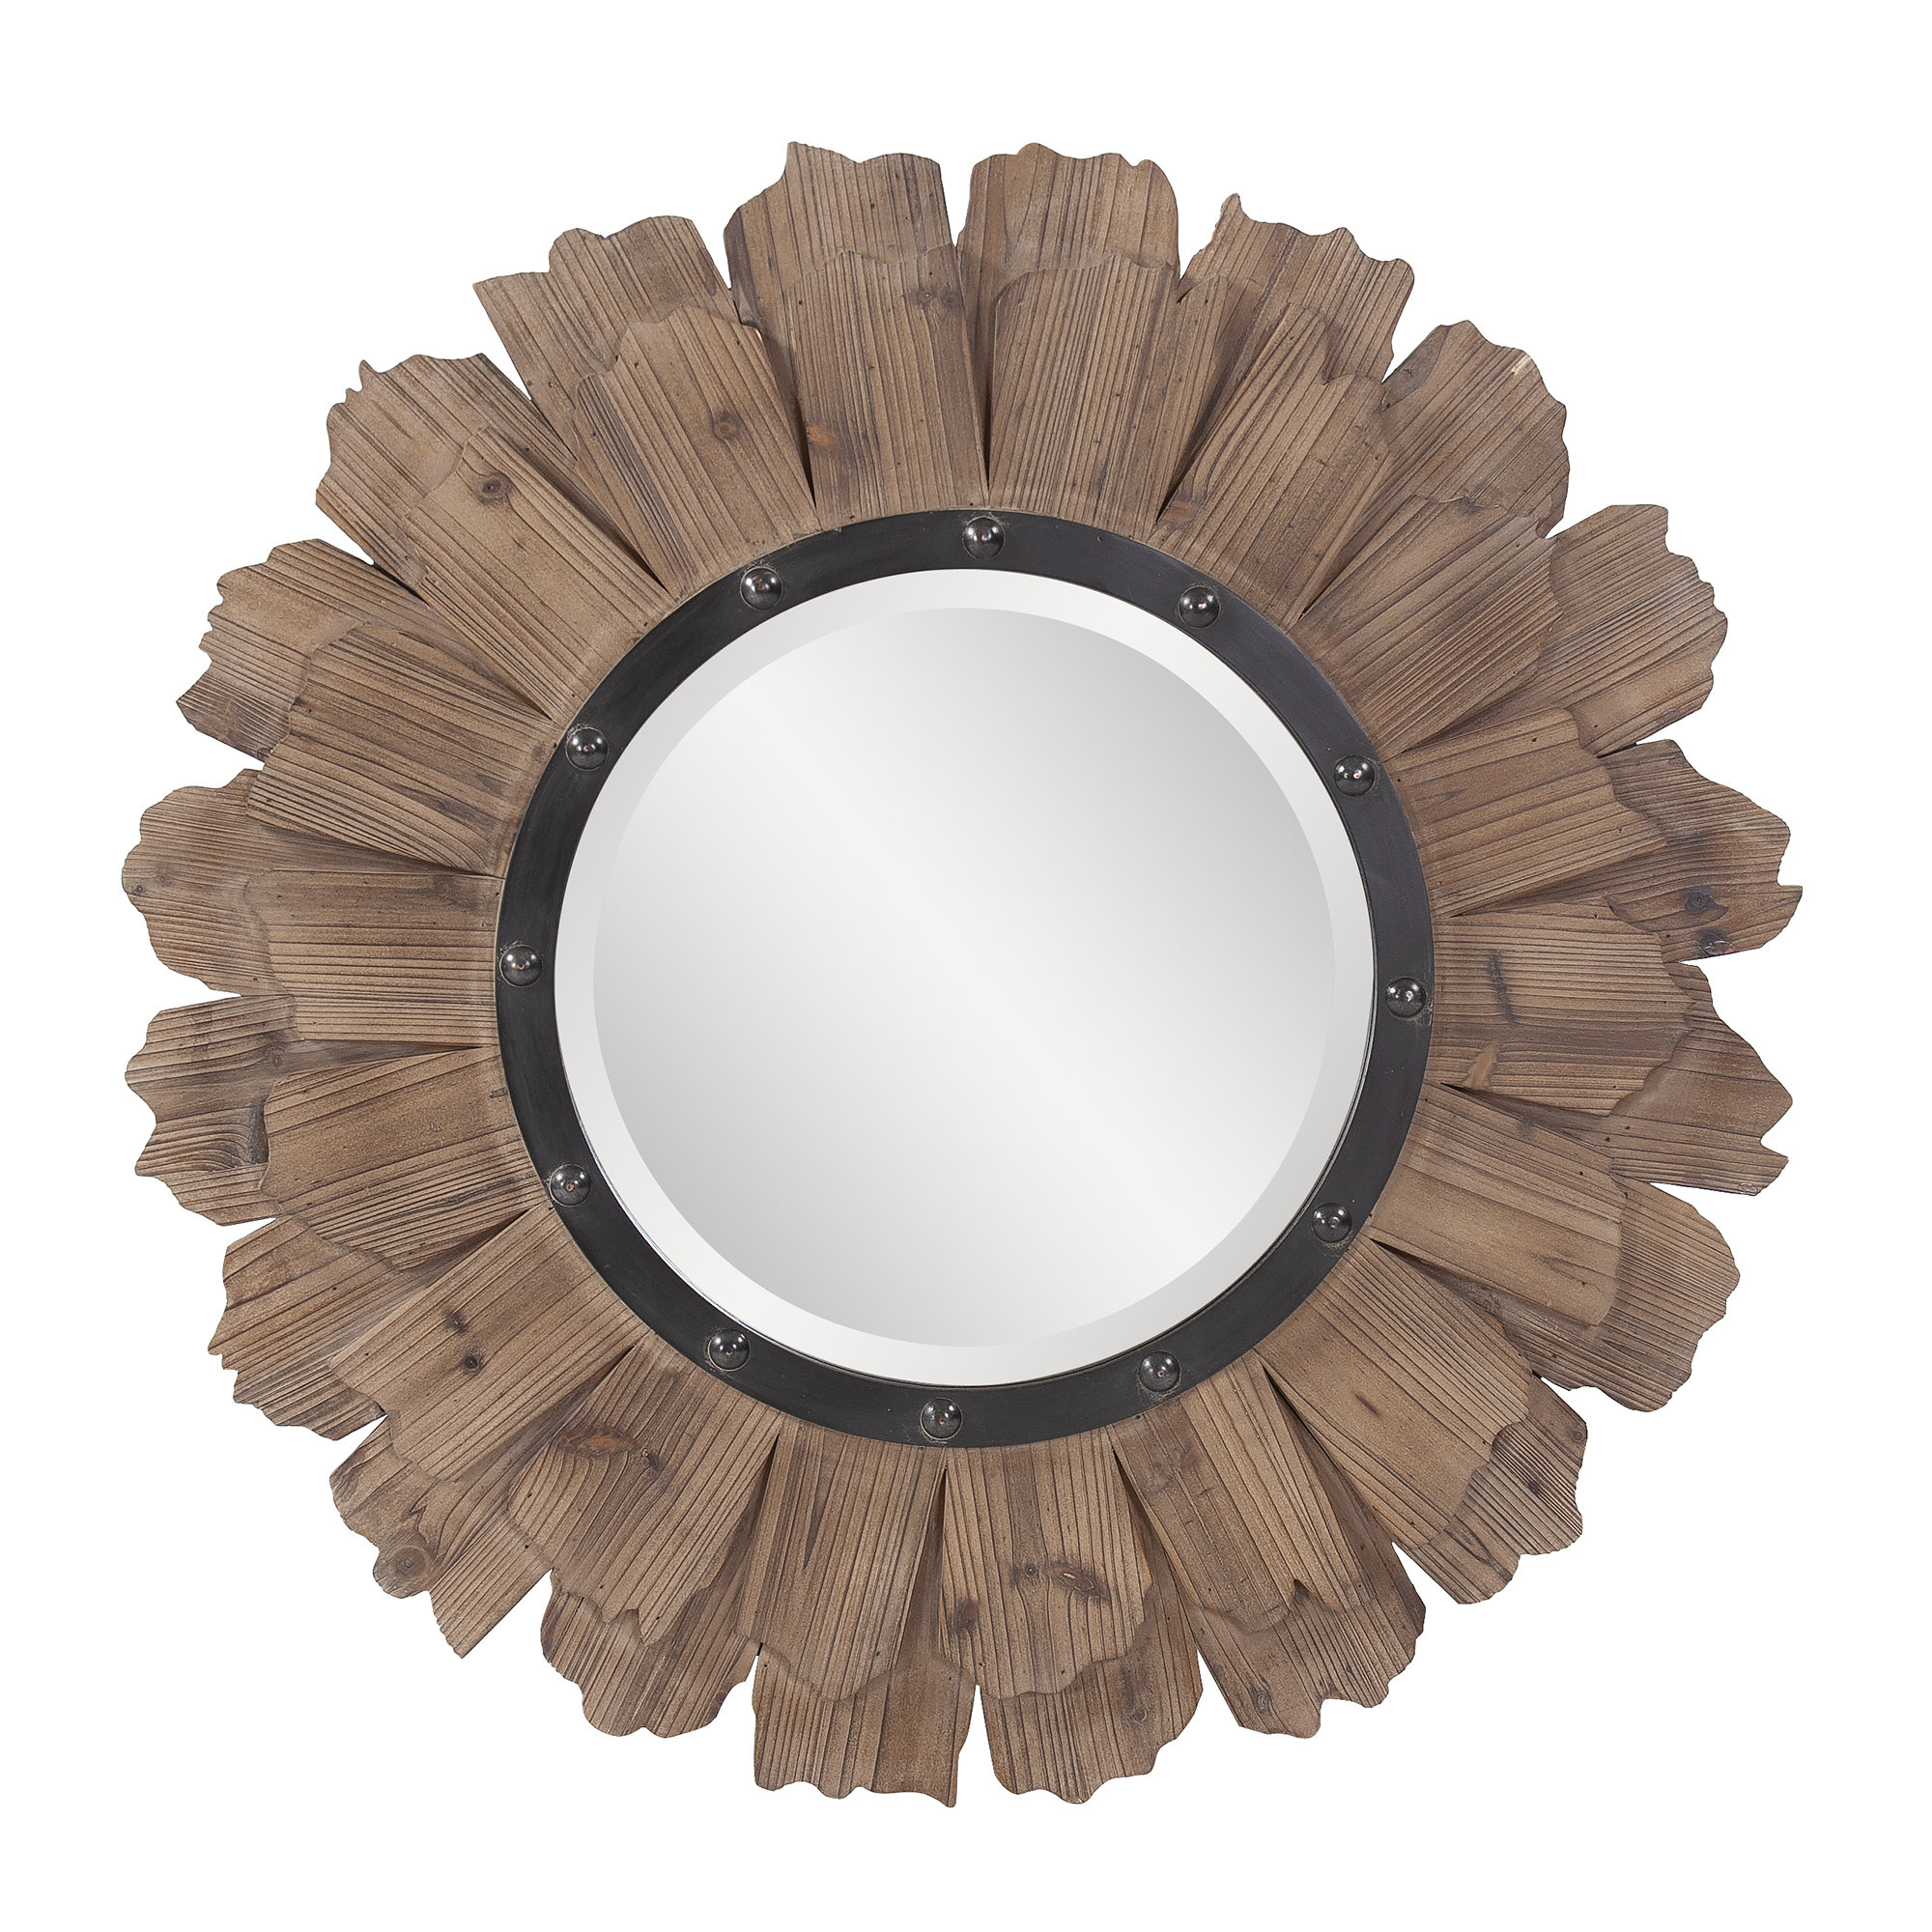 Sunburst Accent Mirror Intended For Perillo Burst Wood Accent Mirrors (View 12 of 20)